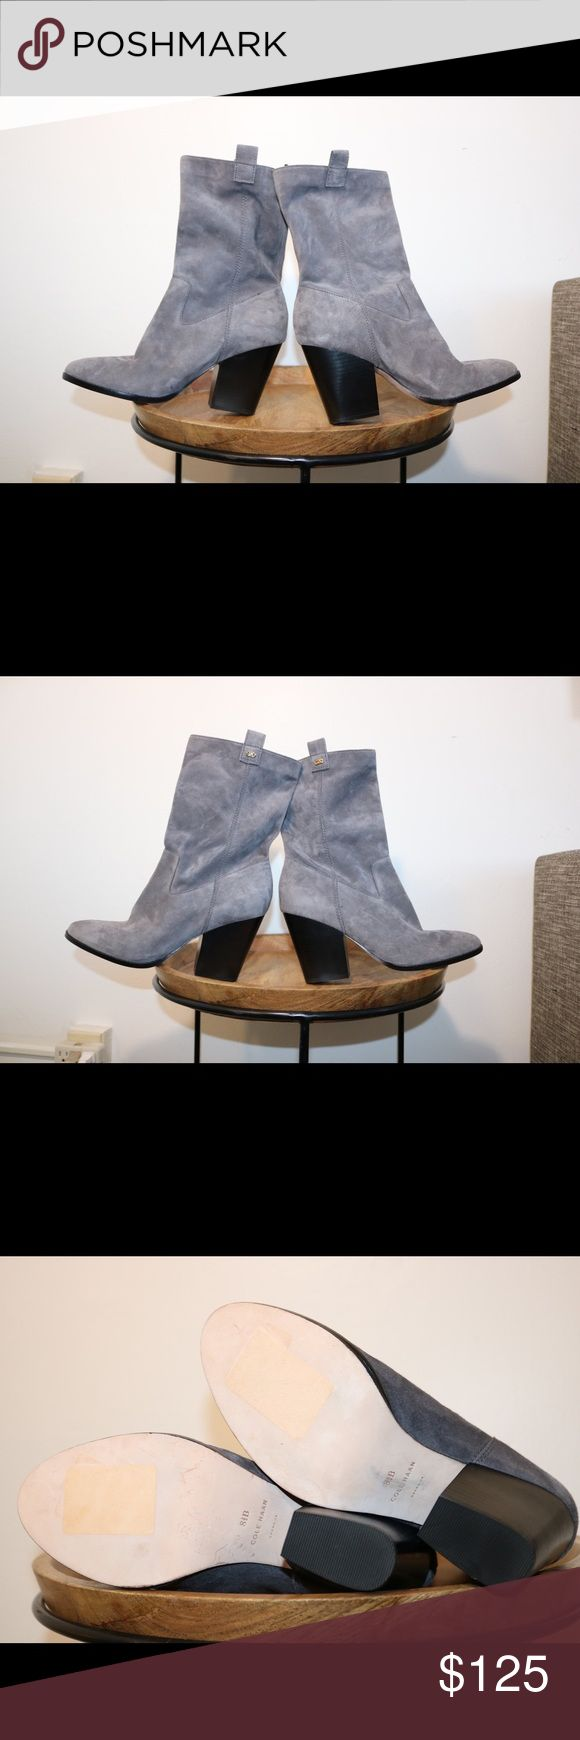 NWOT Cole Haan Grey Suede Boots Brand new. Never worn outside of the store. Cole Haan Shoes Heeled Boots